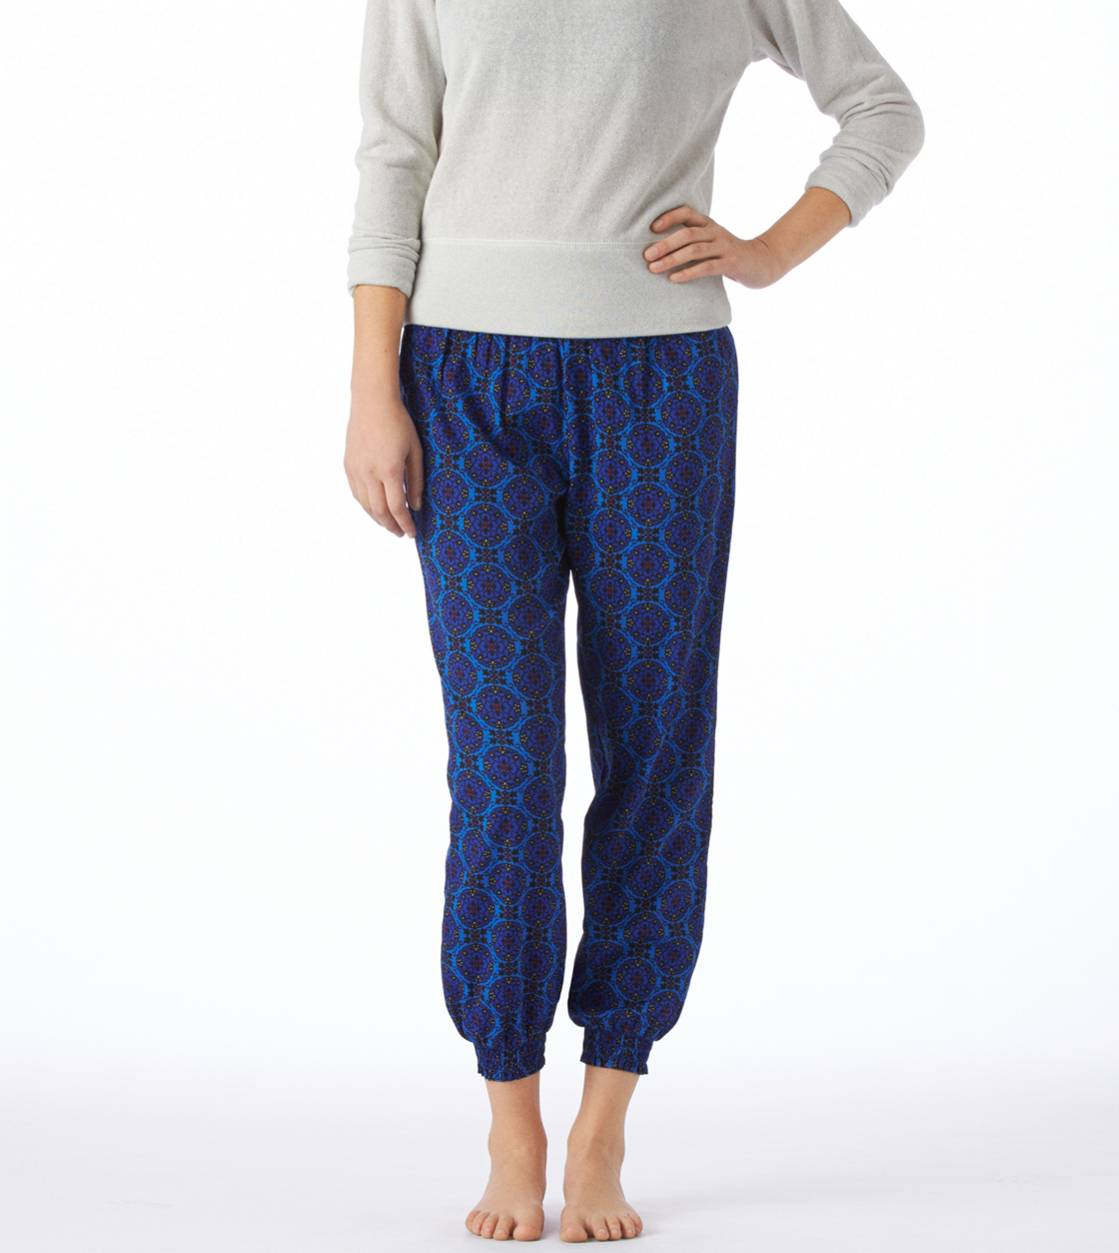 Star Aerie Day-to-Night Silky Pant